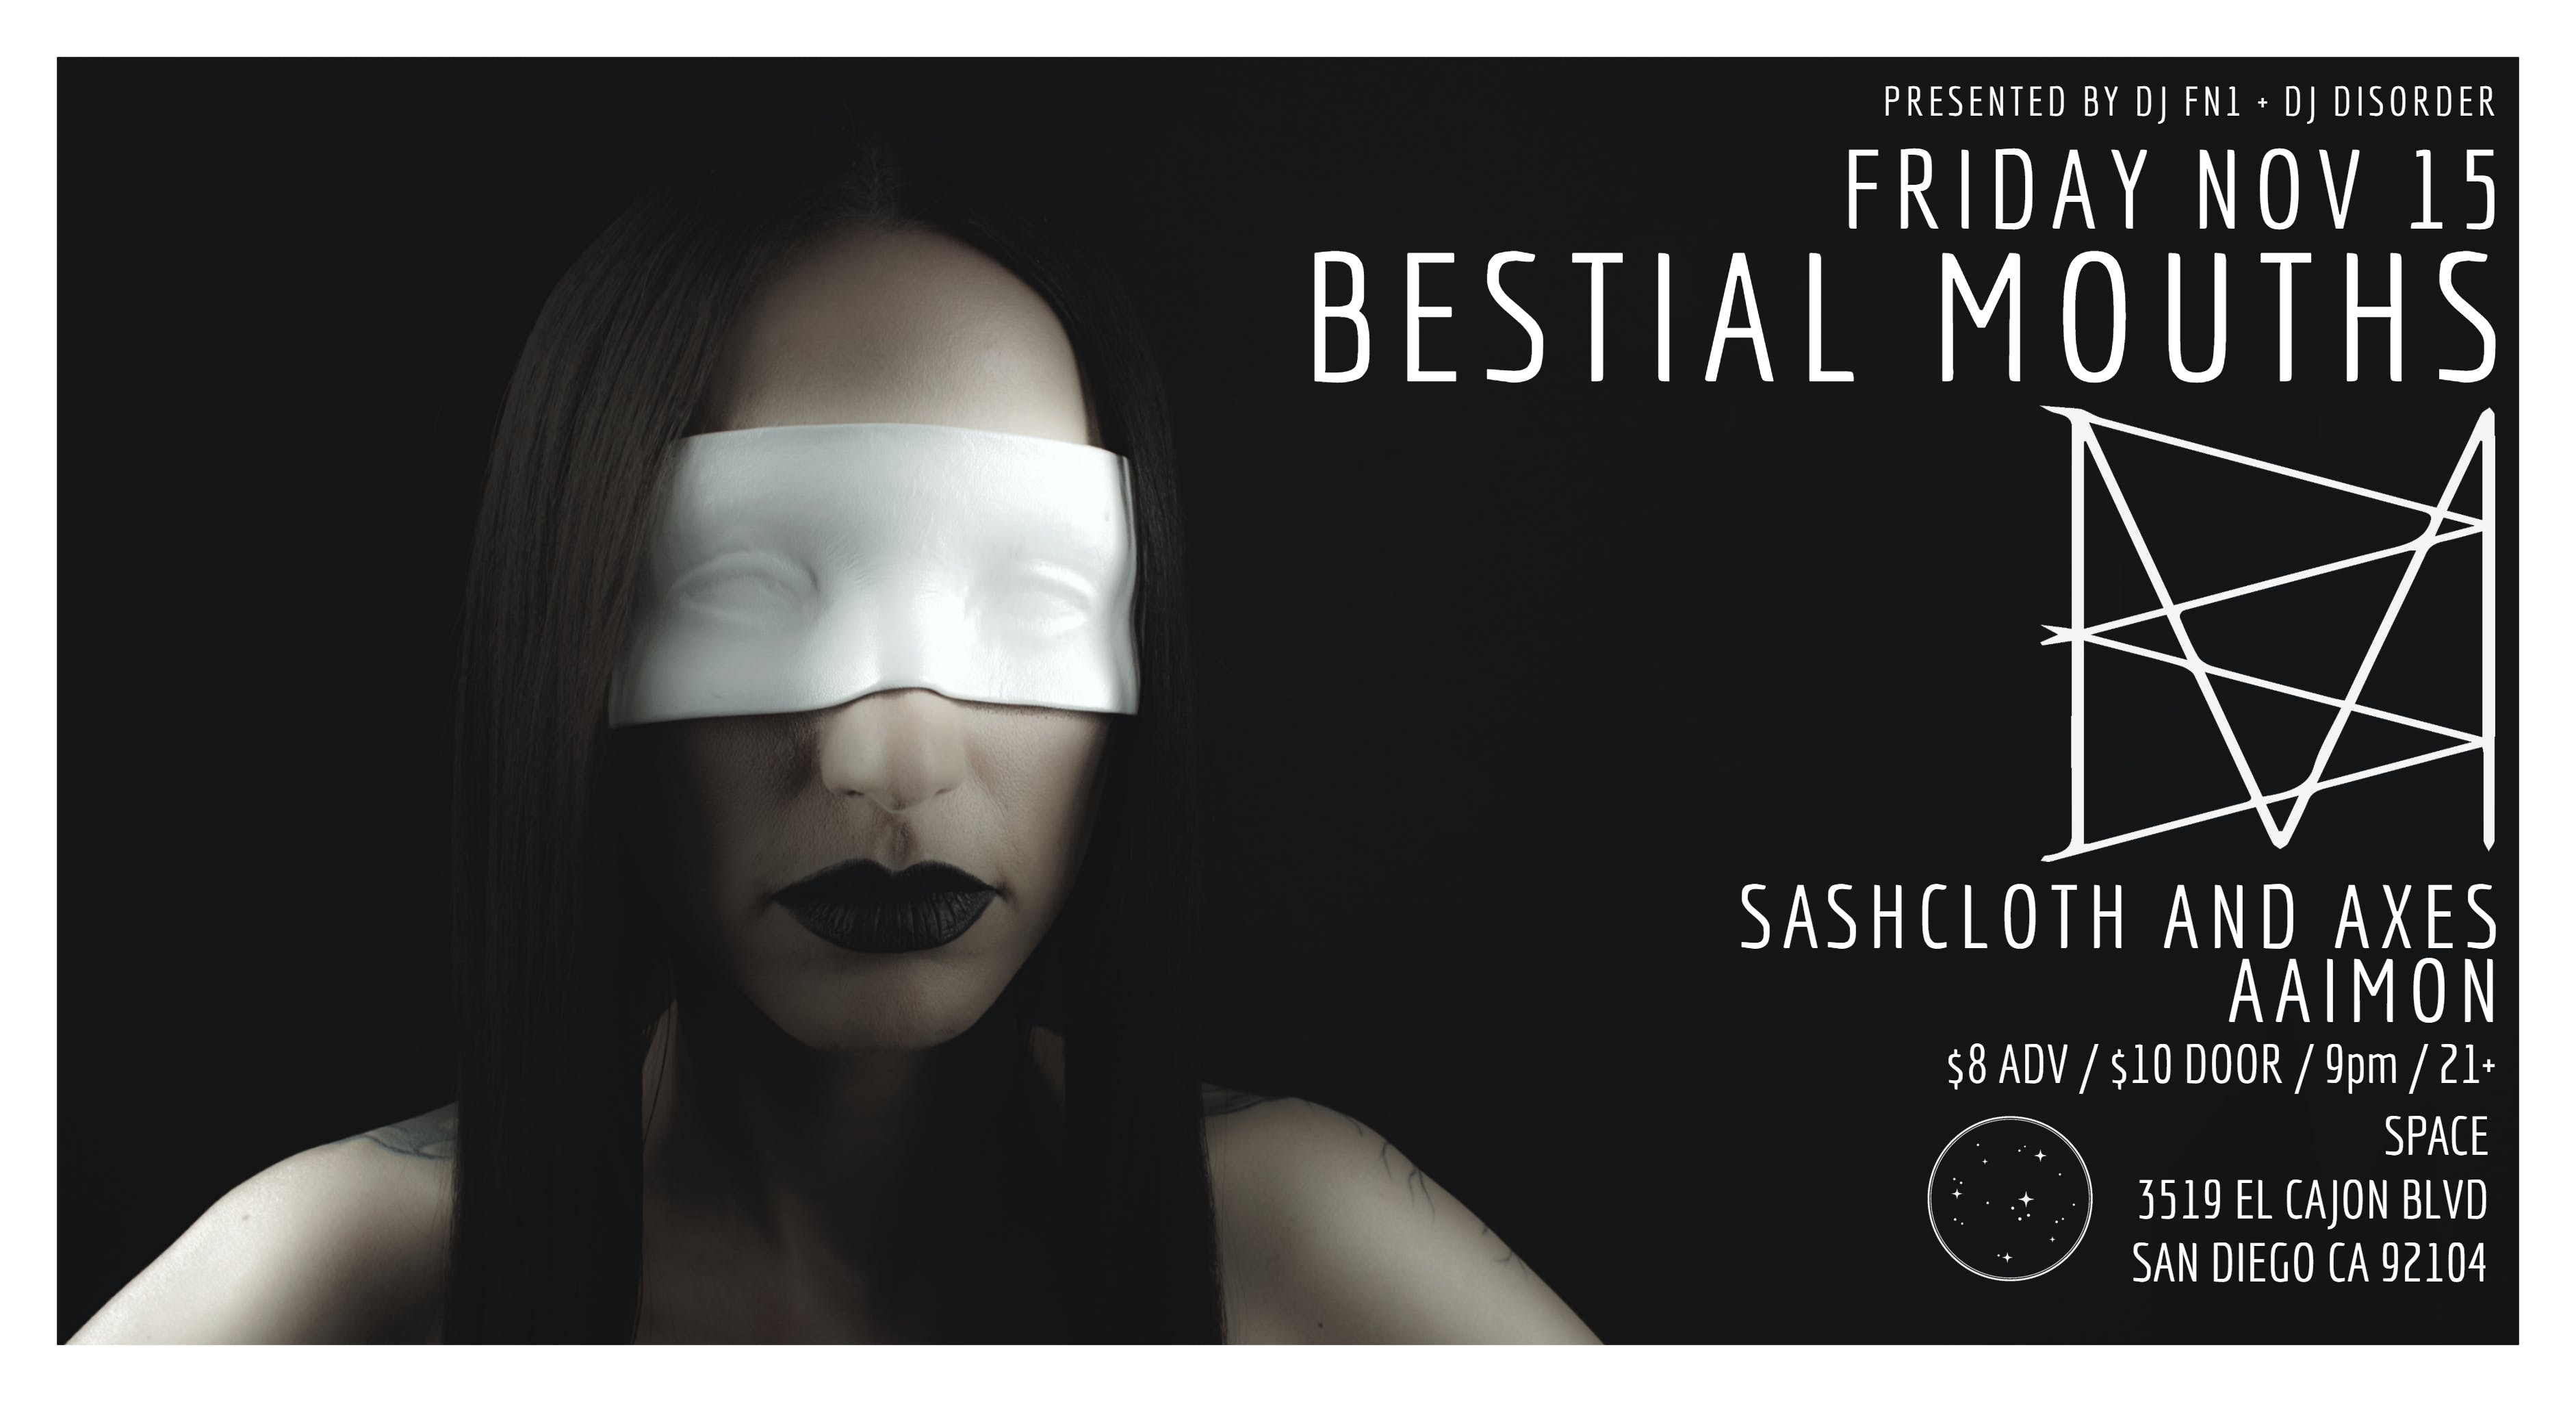 Bestial Mouths, Sashcloth and Axes, Aaimon at SPACE on 11/15